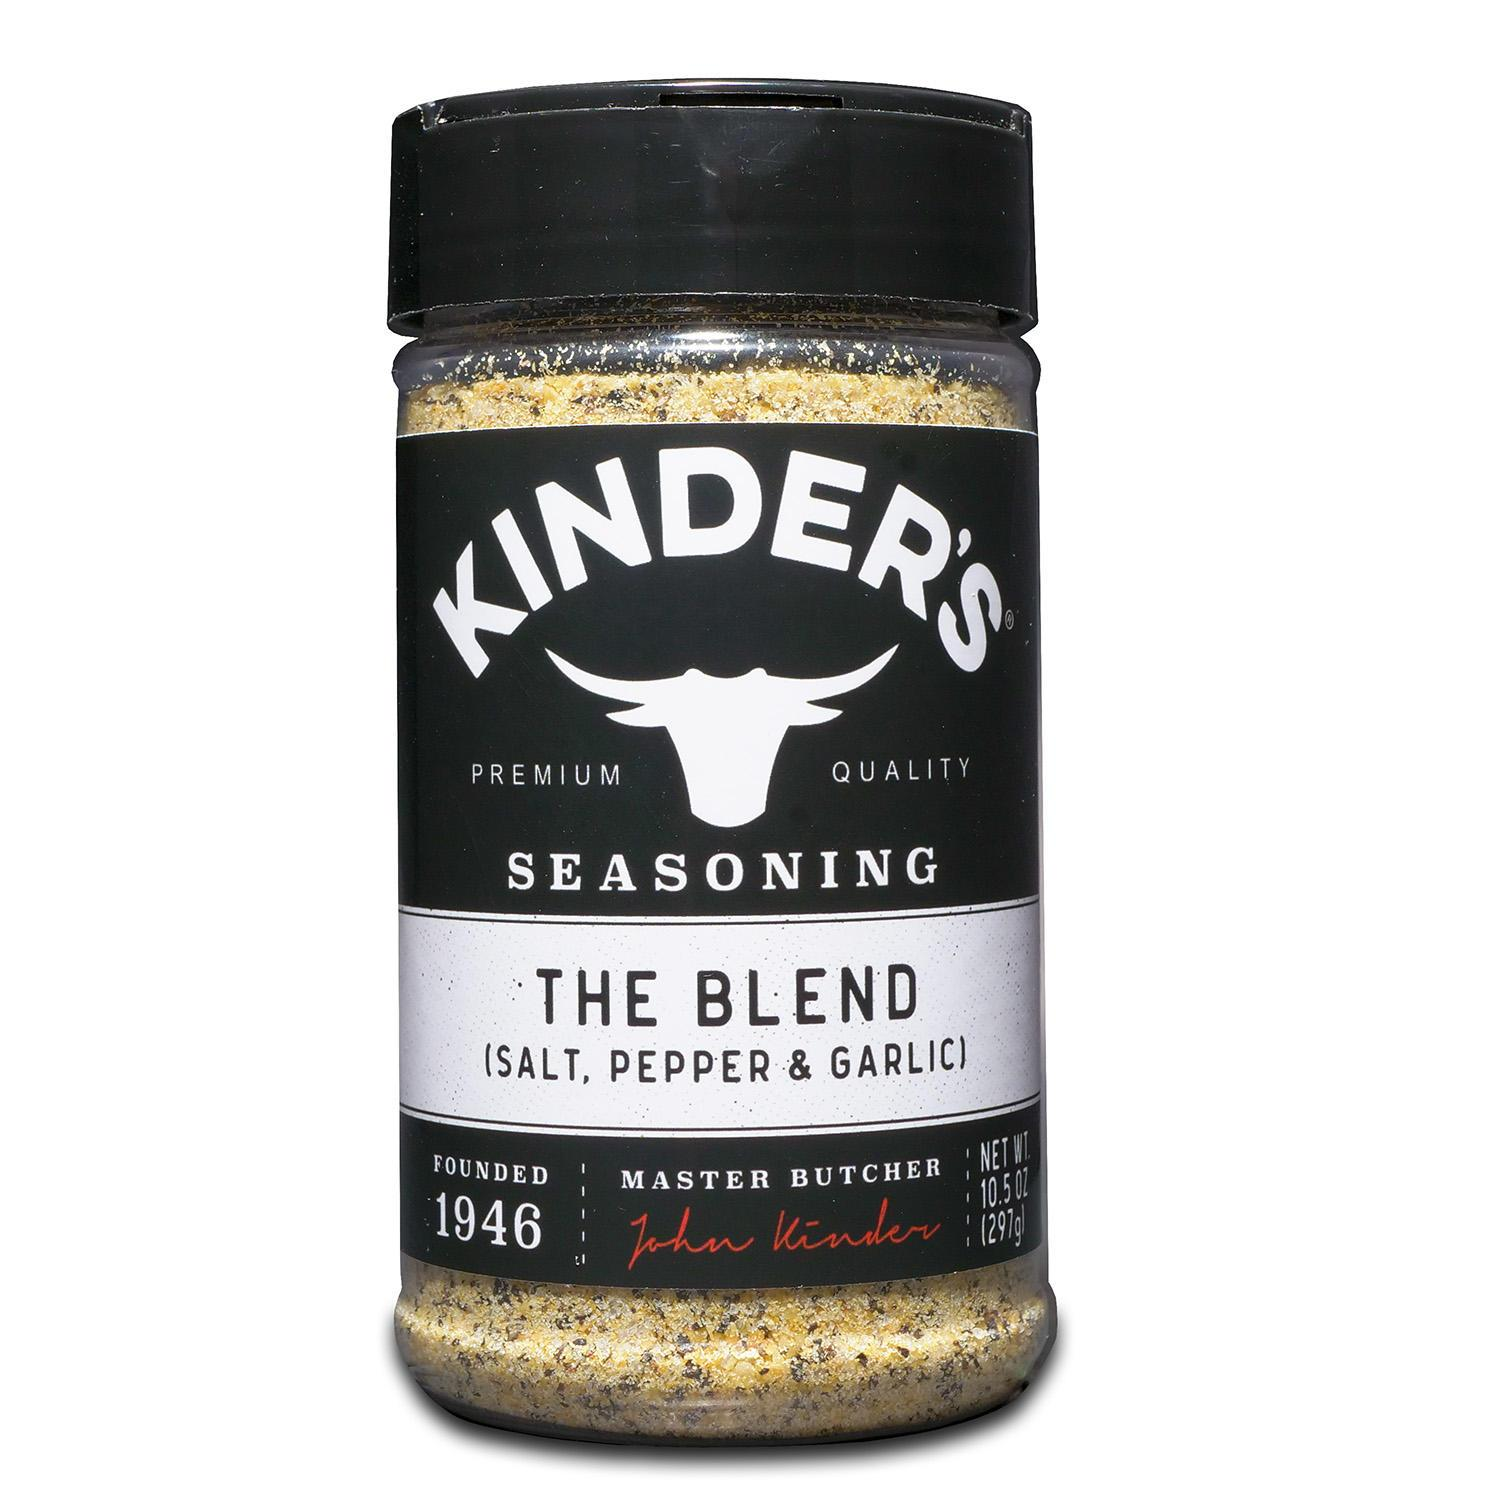 KINDER'S Seasonings KINDER'S The Blend (Salt, Pepper & Garlic) 10.5 Ounce